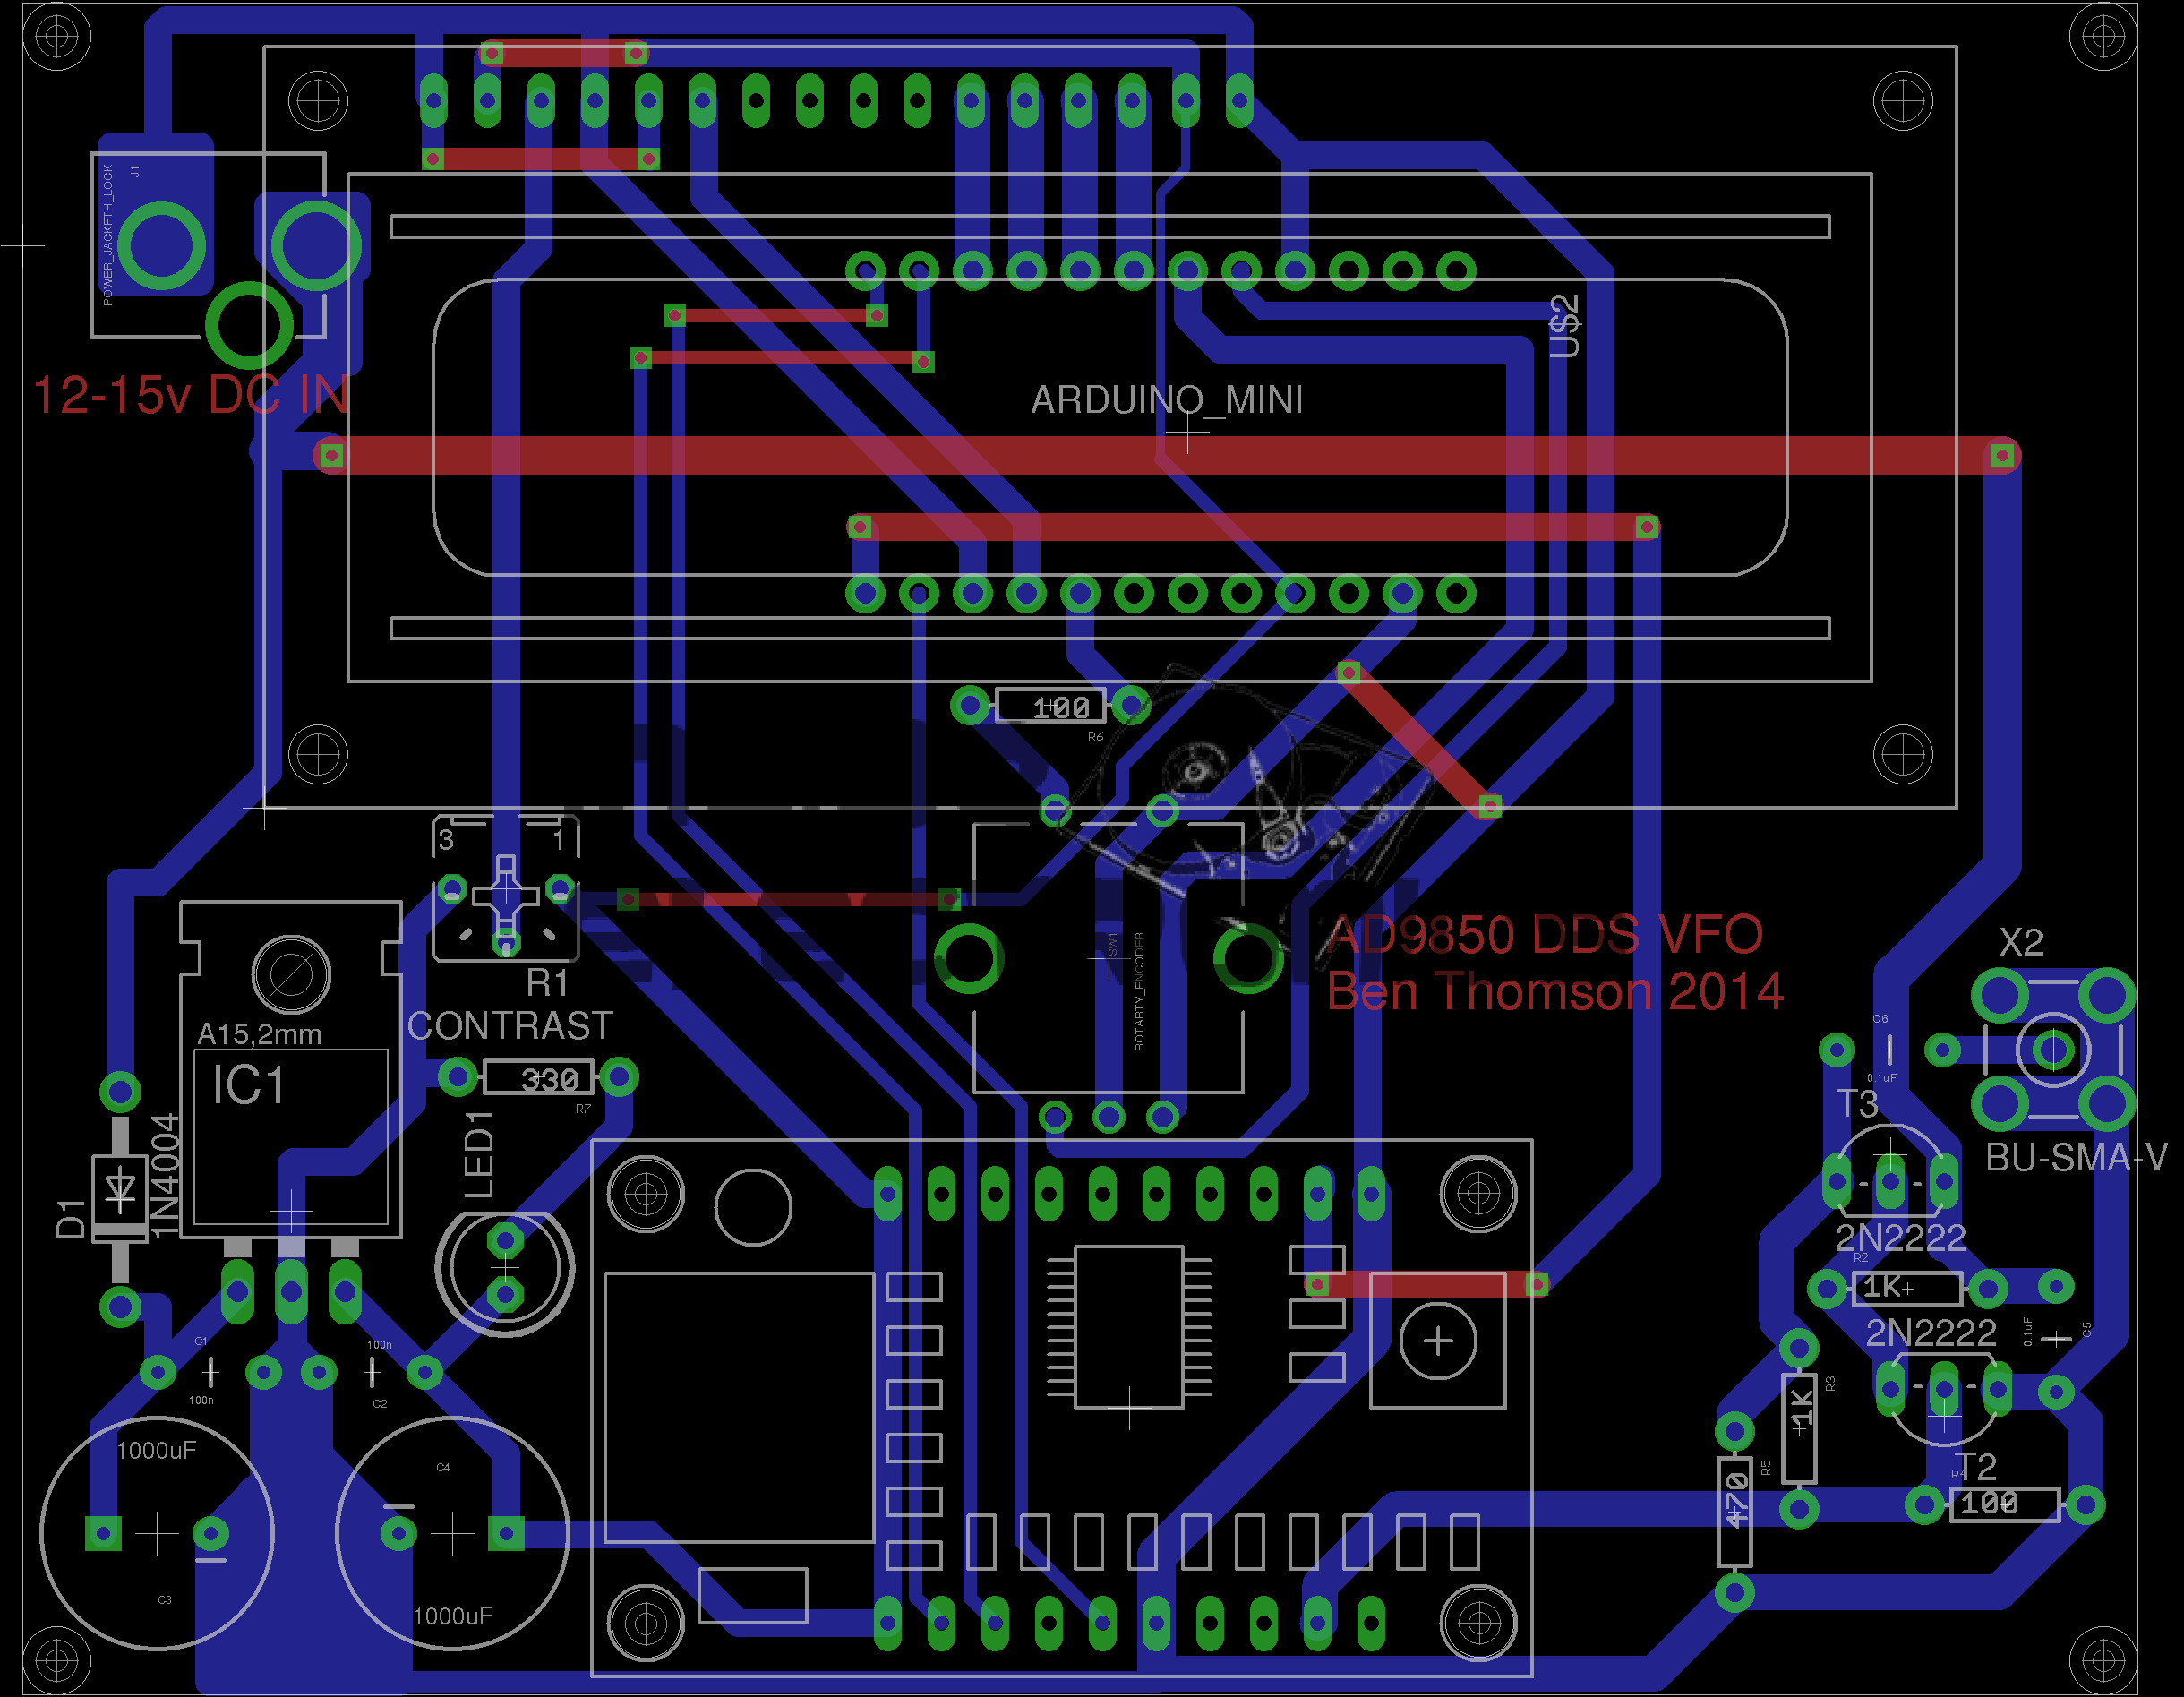 AD9850 DDS VFO PCB & Schematic Layout - Experimental Engineering on